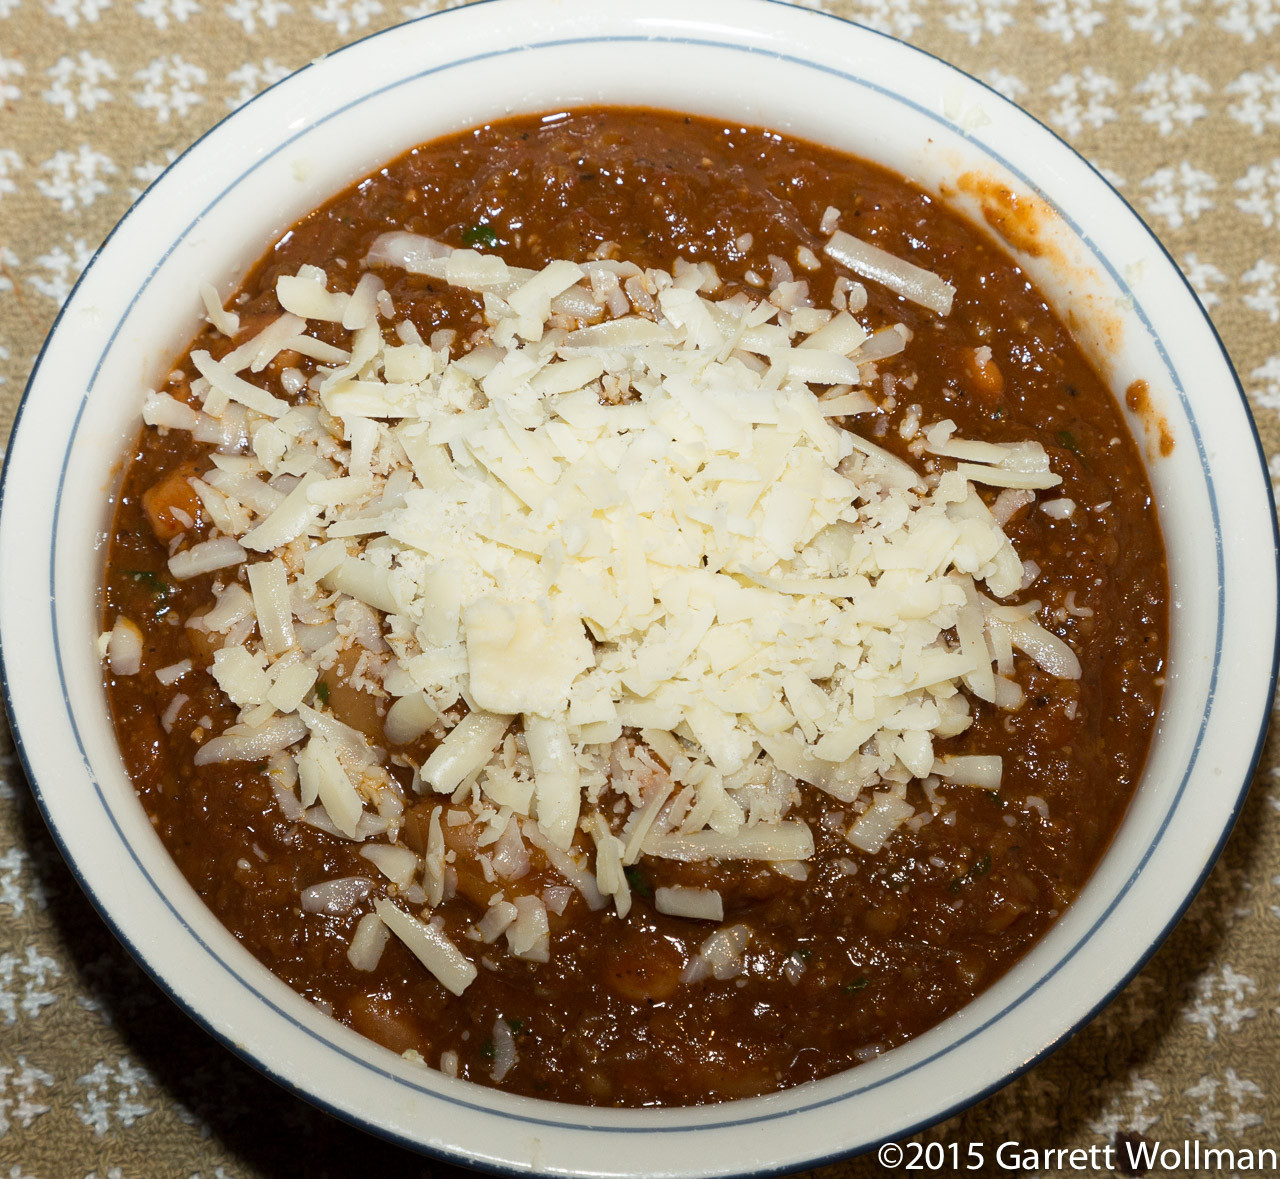 Cooks Illustrated Vegetarian Chili  Other people's recipes Lan Lam's Ve arian vegan even